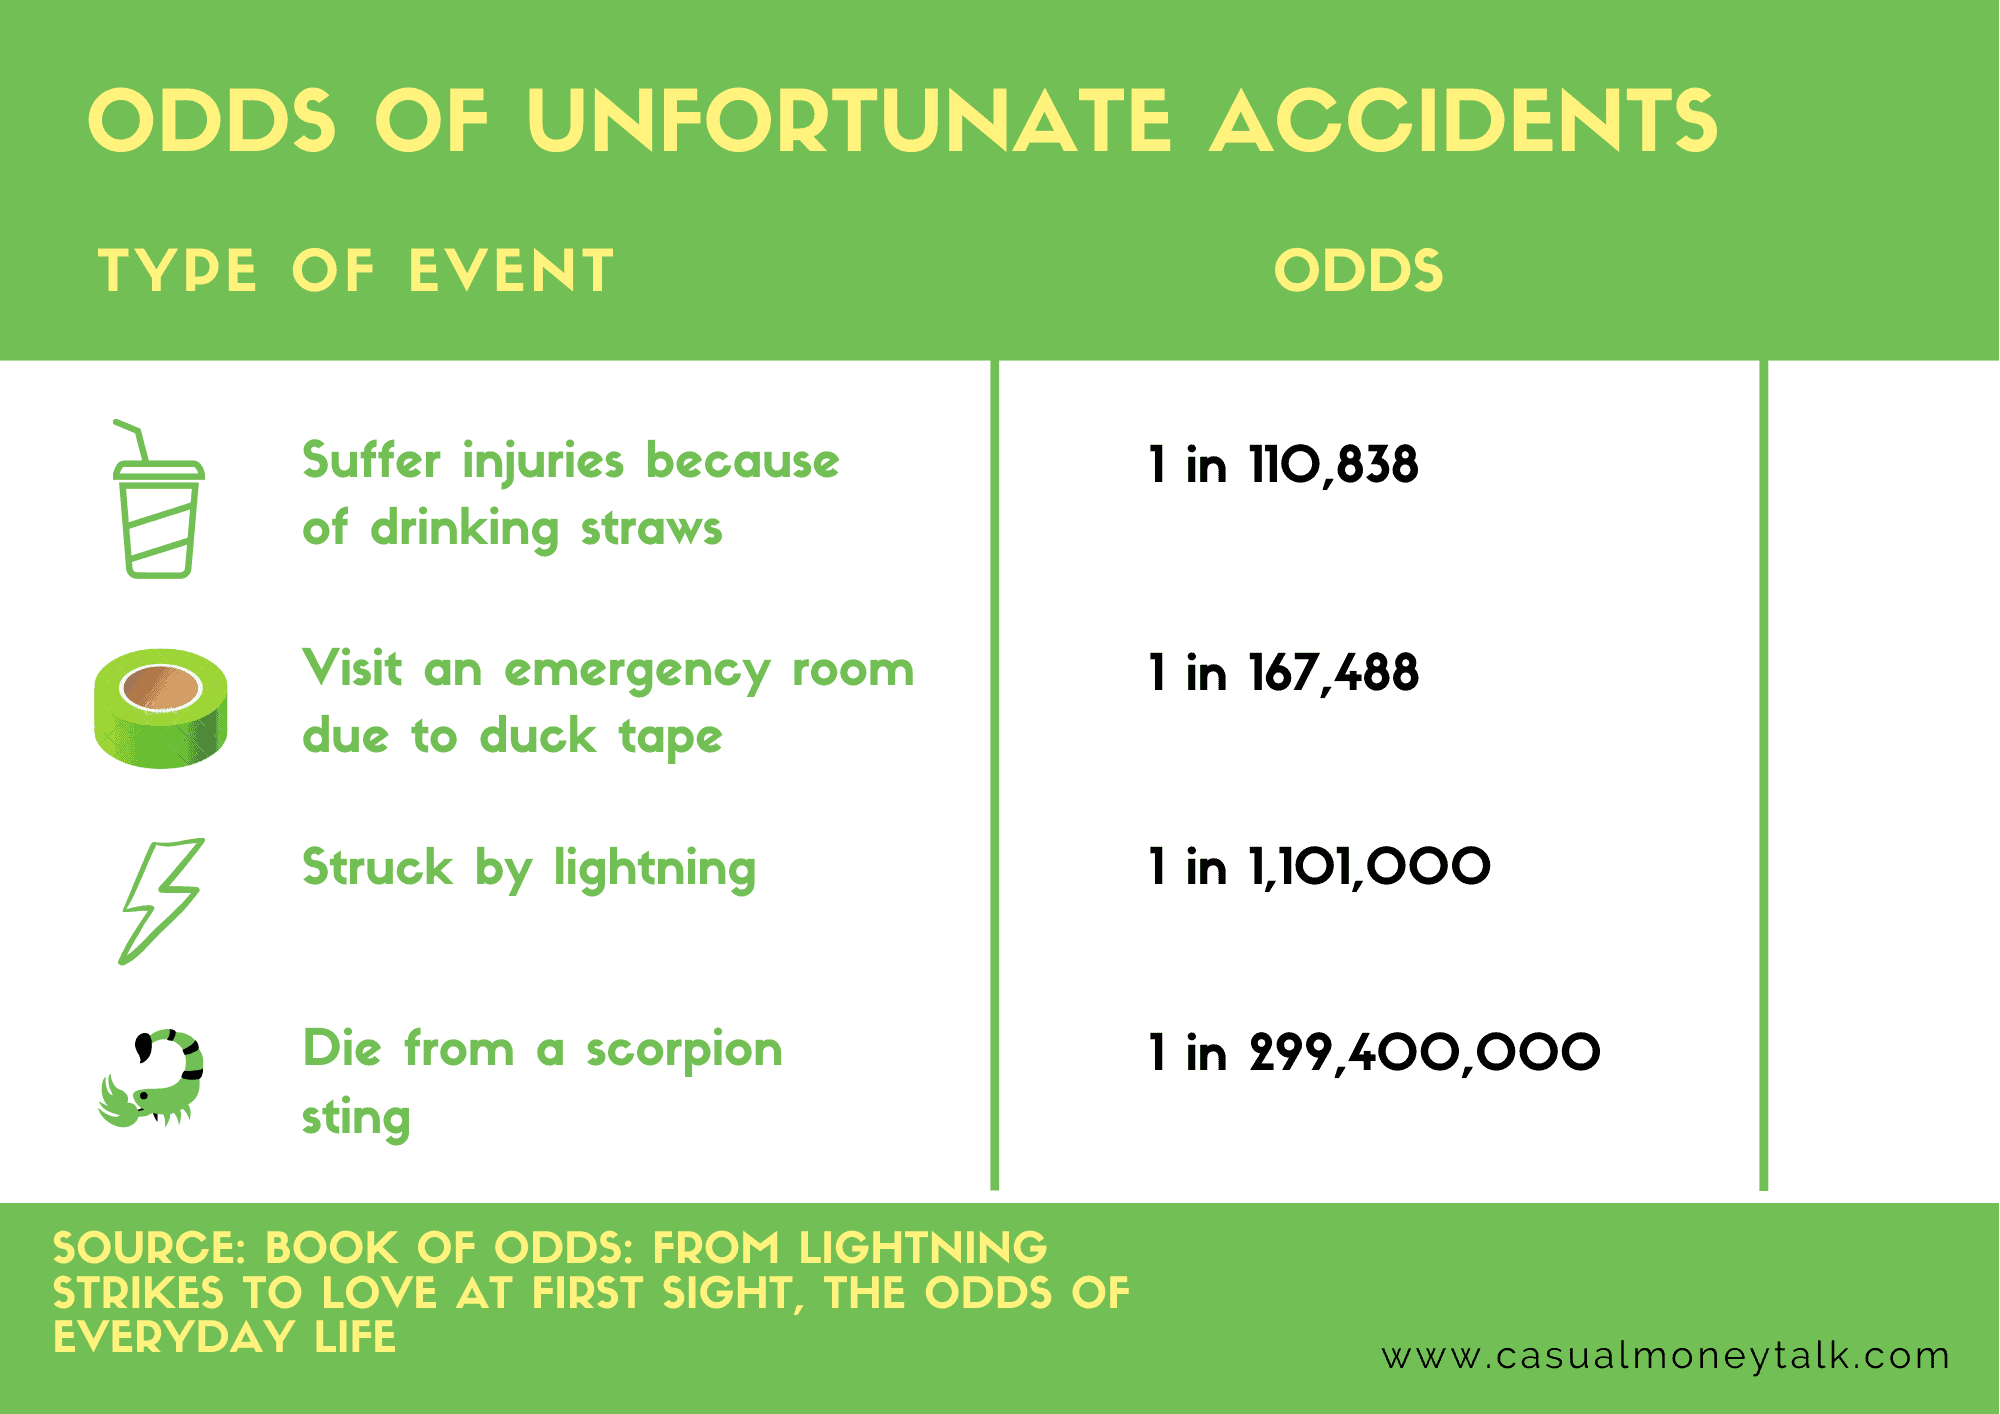 Odds of Unfortunate Accidents